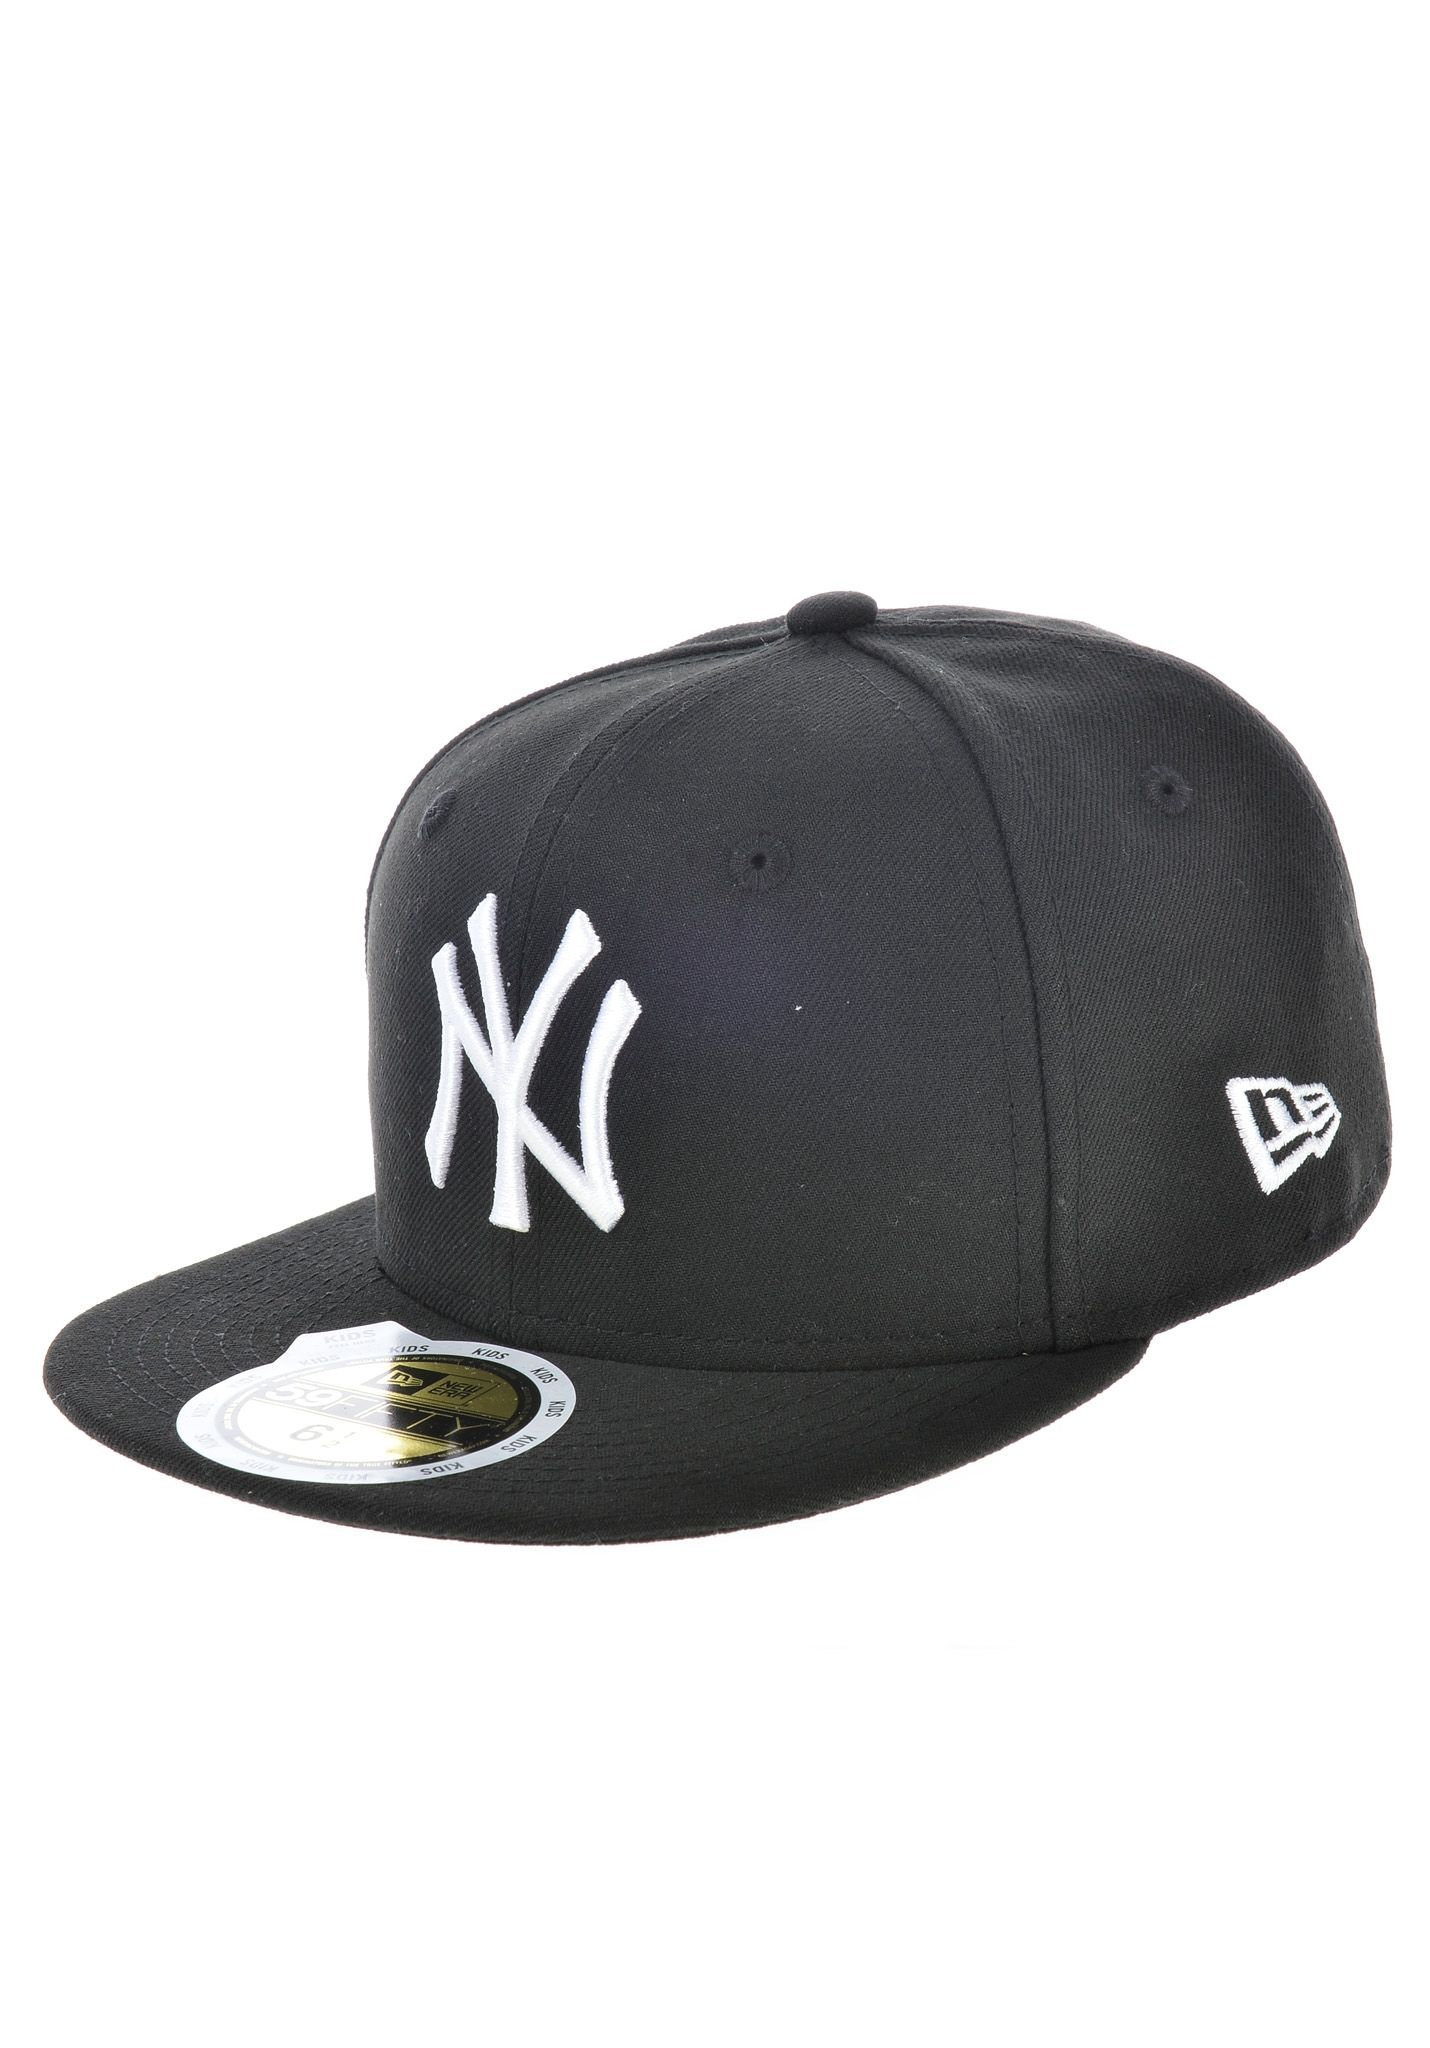 da1192ca99bcb NEW Era 59Fifty New York Yankees - Fitted Cap - Black - Planet Sports